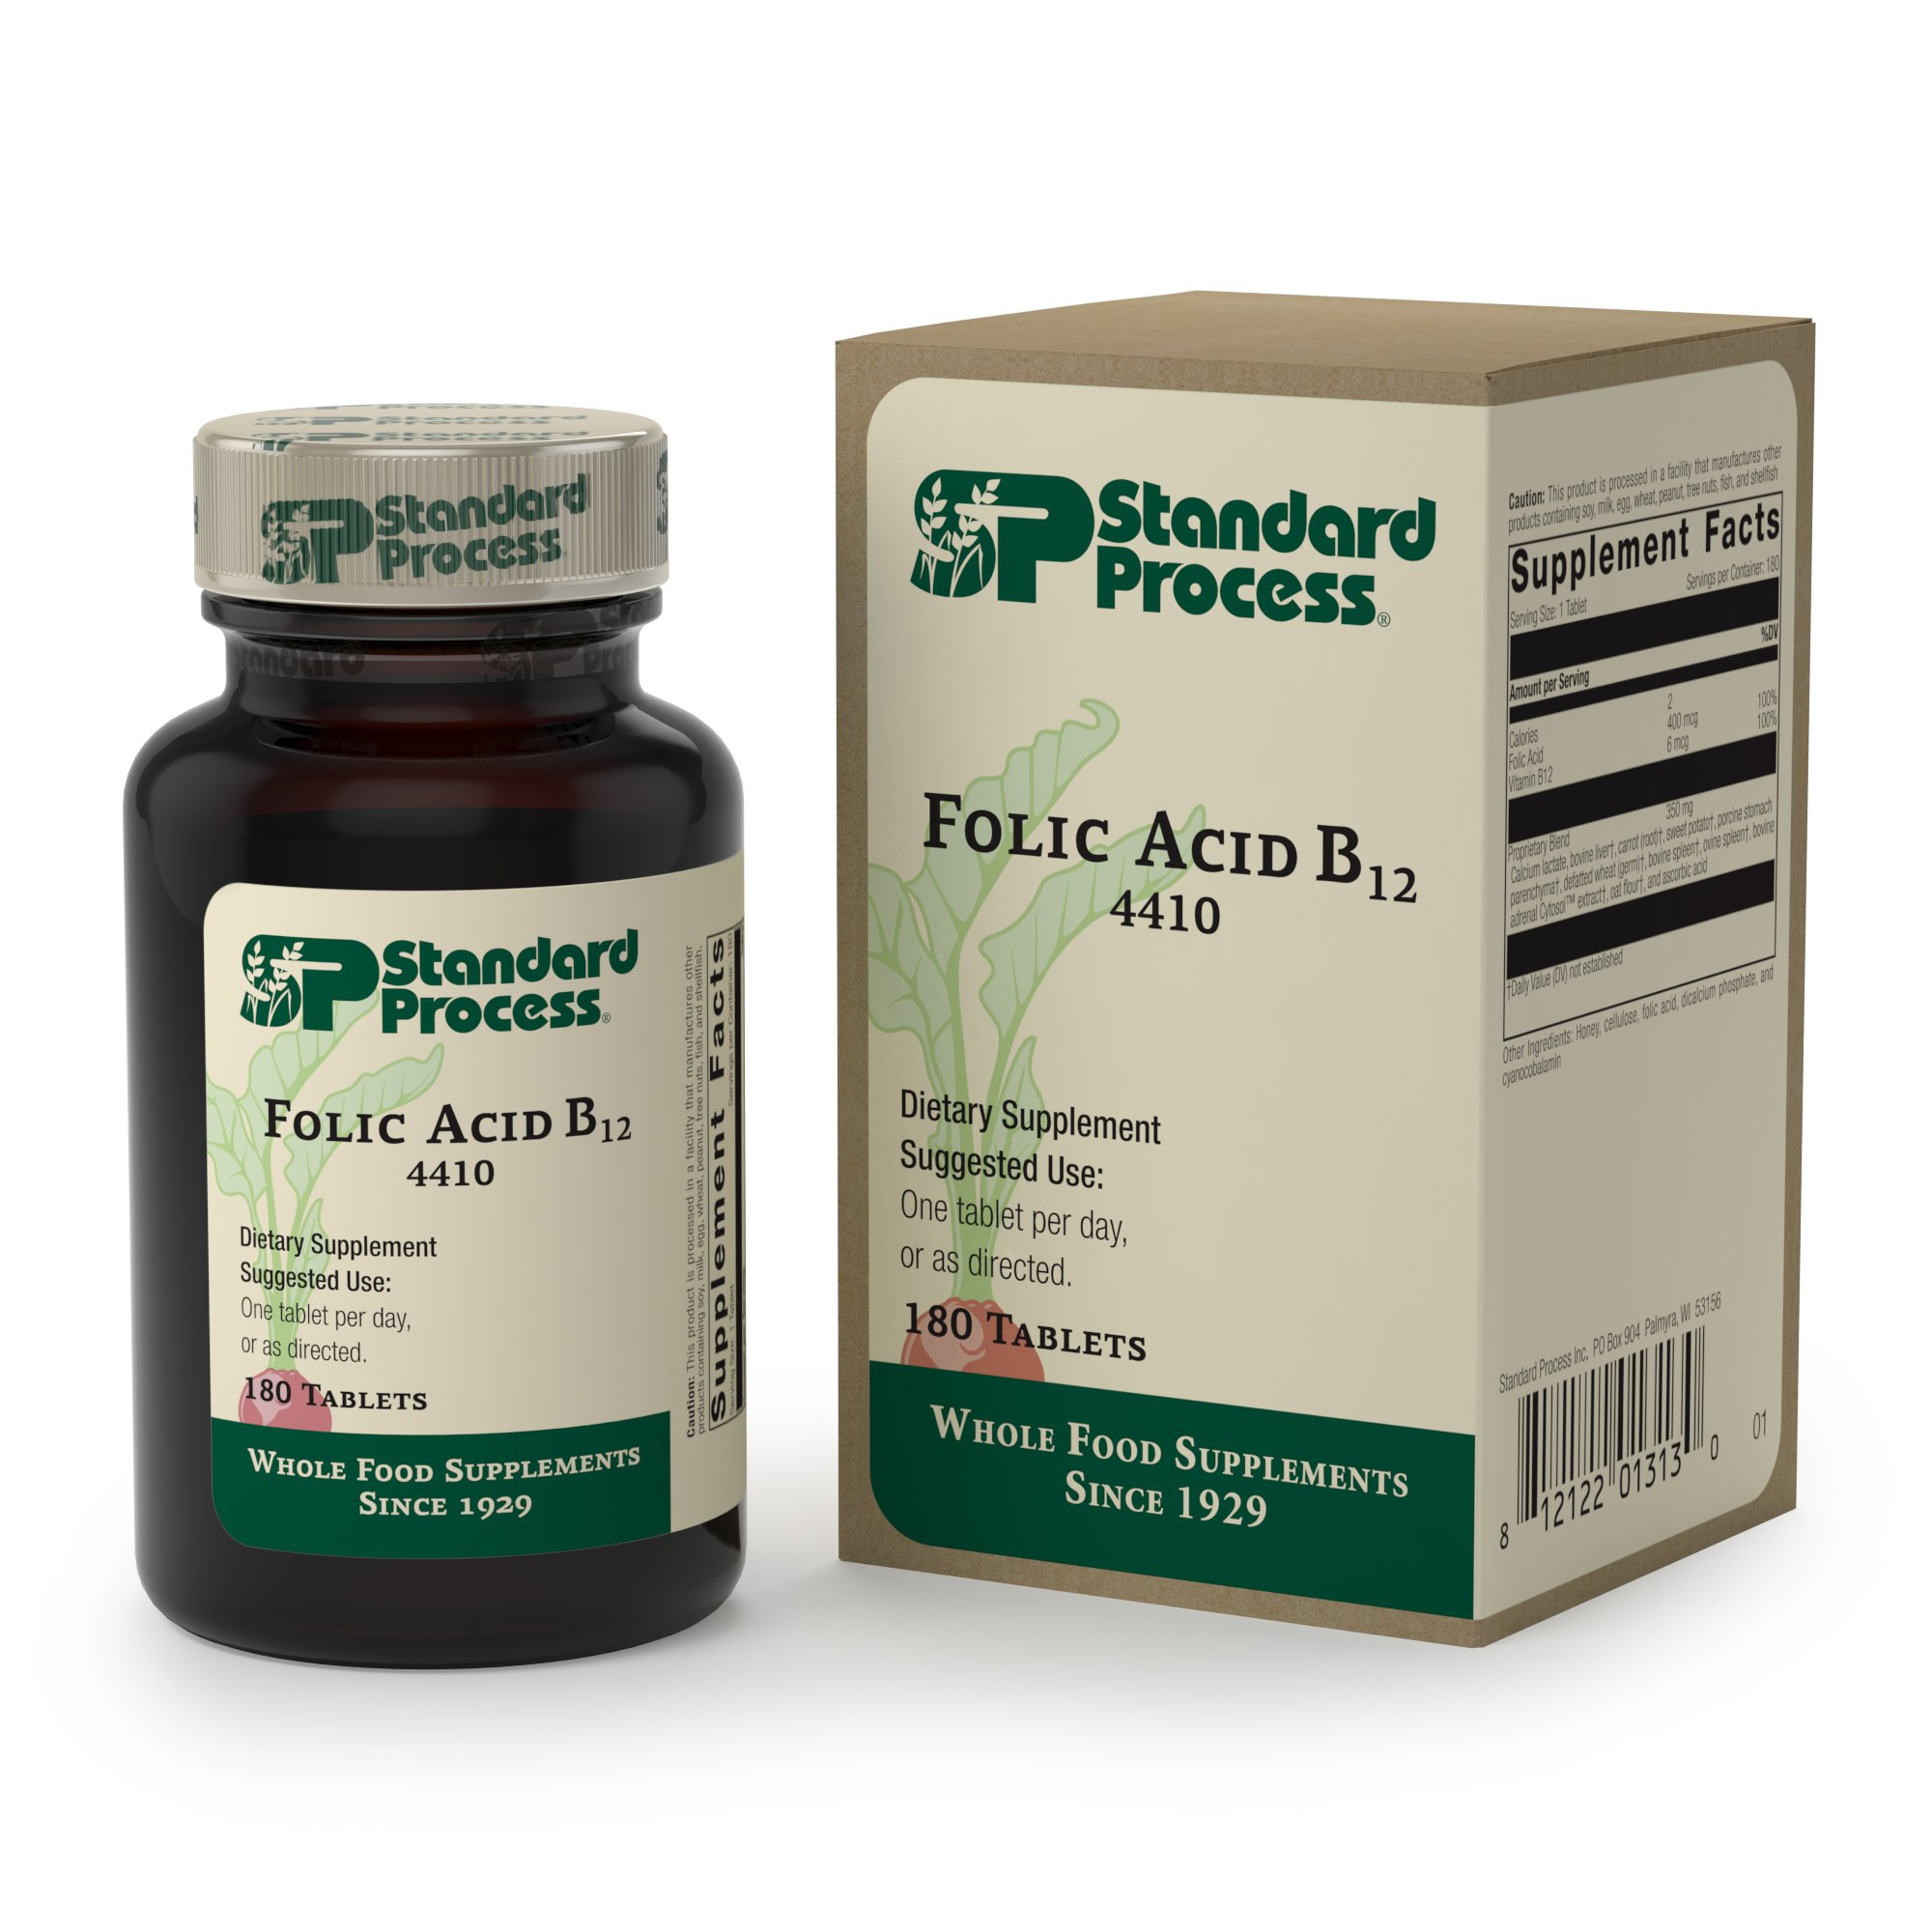 Standard Process - Folic Acid B12 - Folic Acid and Vitamin B12 Supplement, Supports Cellular Health, Circulatory and Nervous Systems, Healthy Homcysteine Levels - 180 Tablets by Standard Process